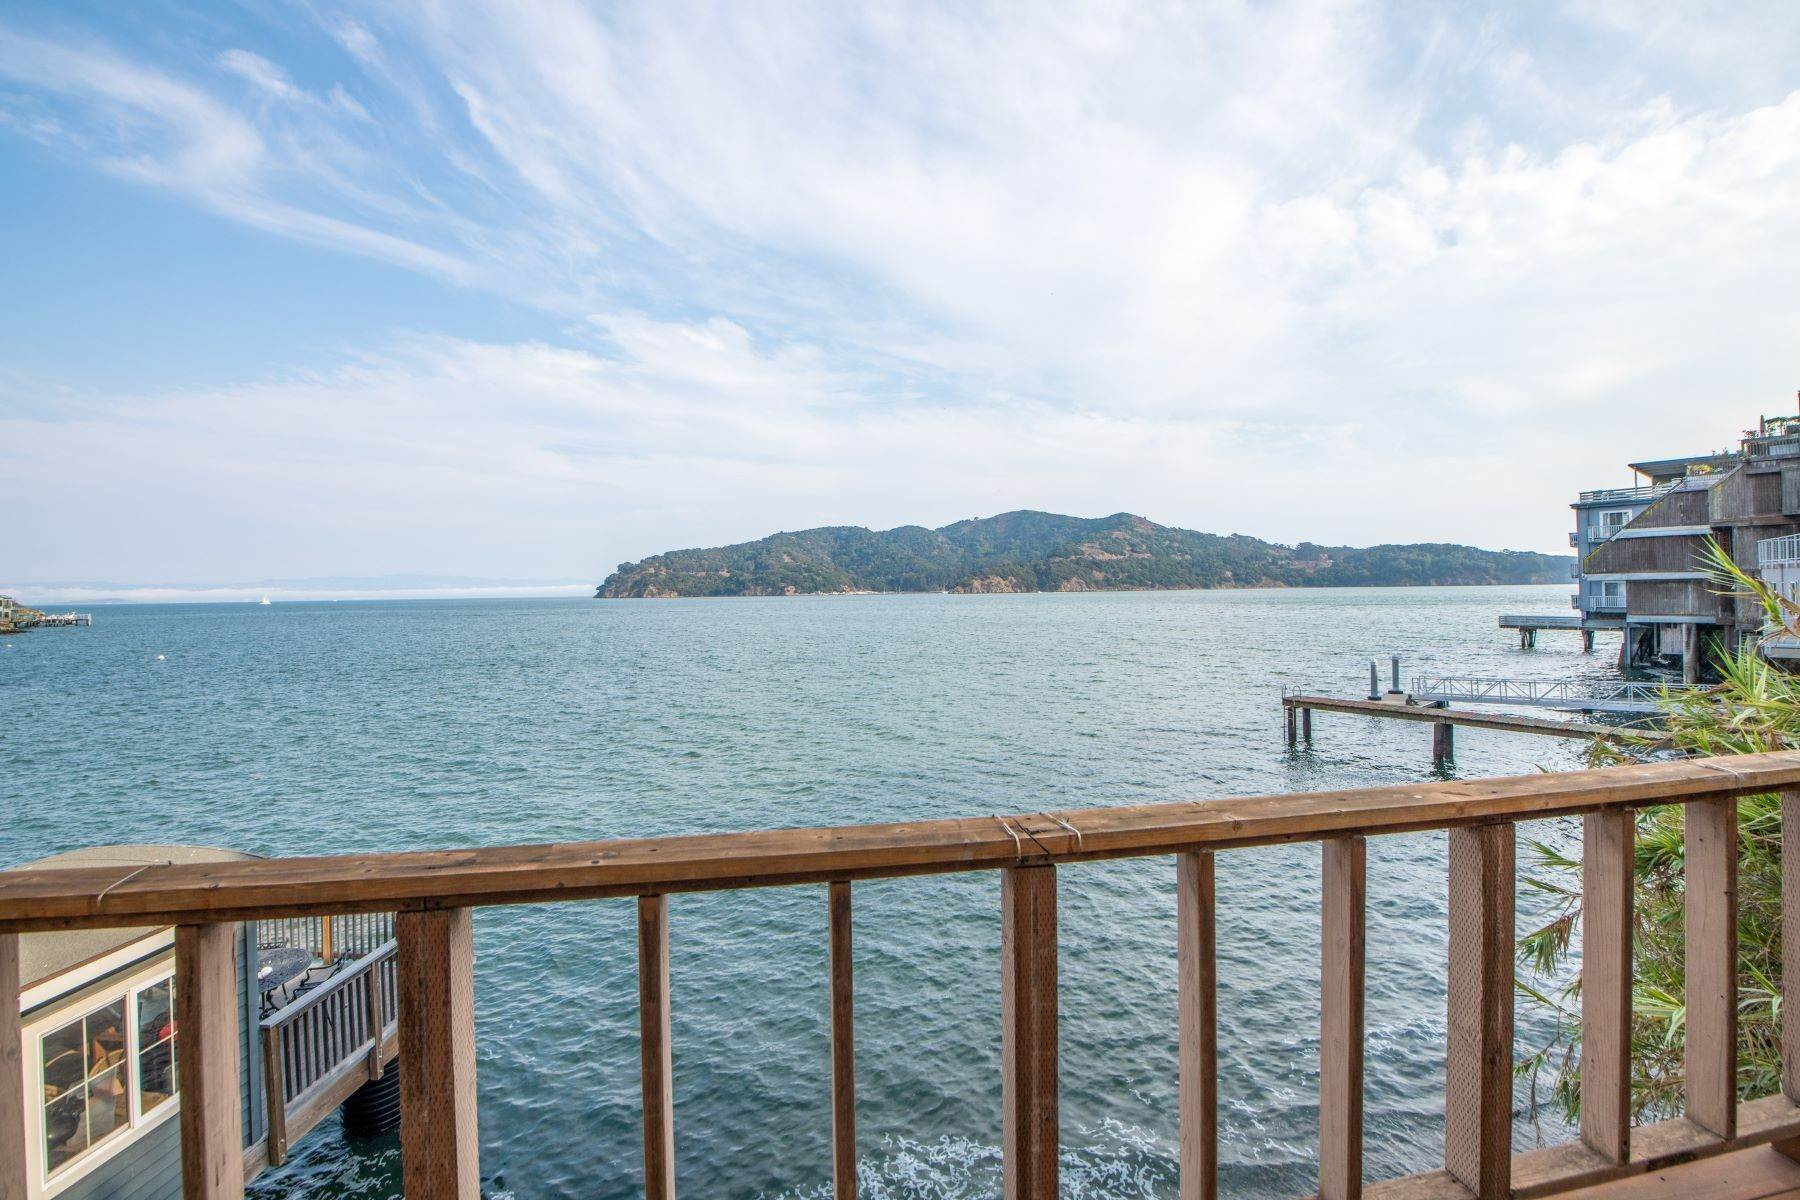 Duplex Homes 为 销售 在 Waterfront/Beachfront Tiburon Duplex for Development 2088 Paradise Drive 蒂伯龙, 加利福尼亚州 94920 美国